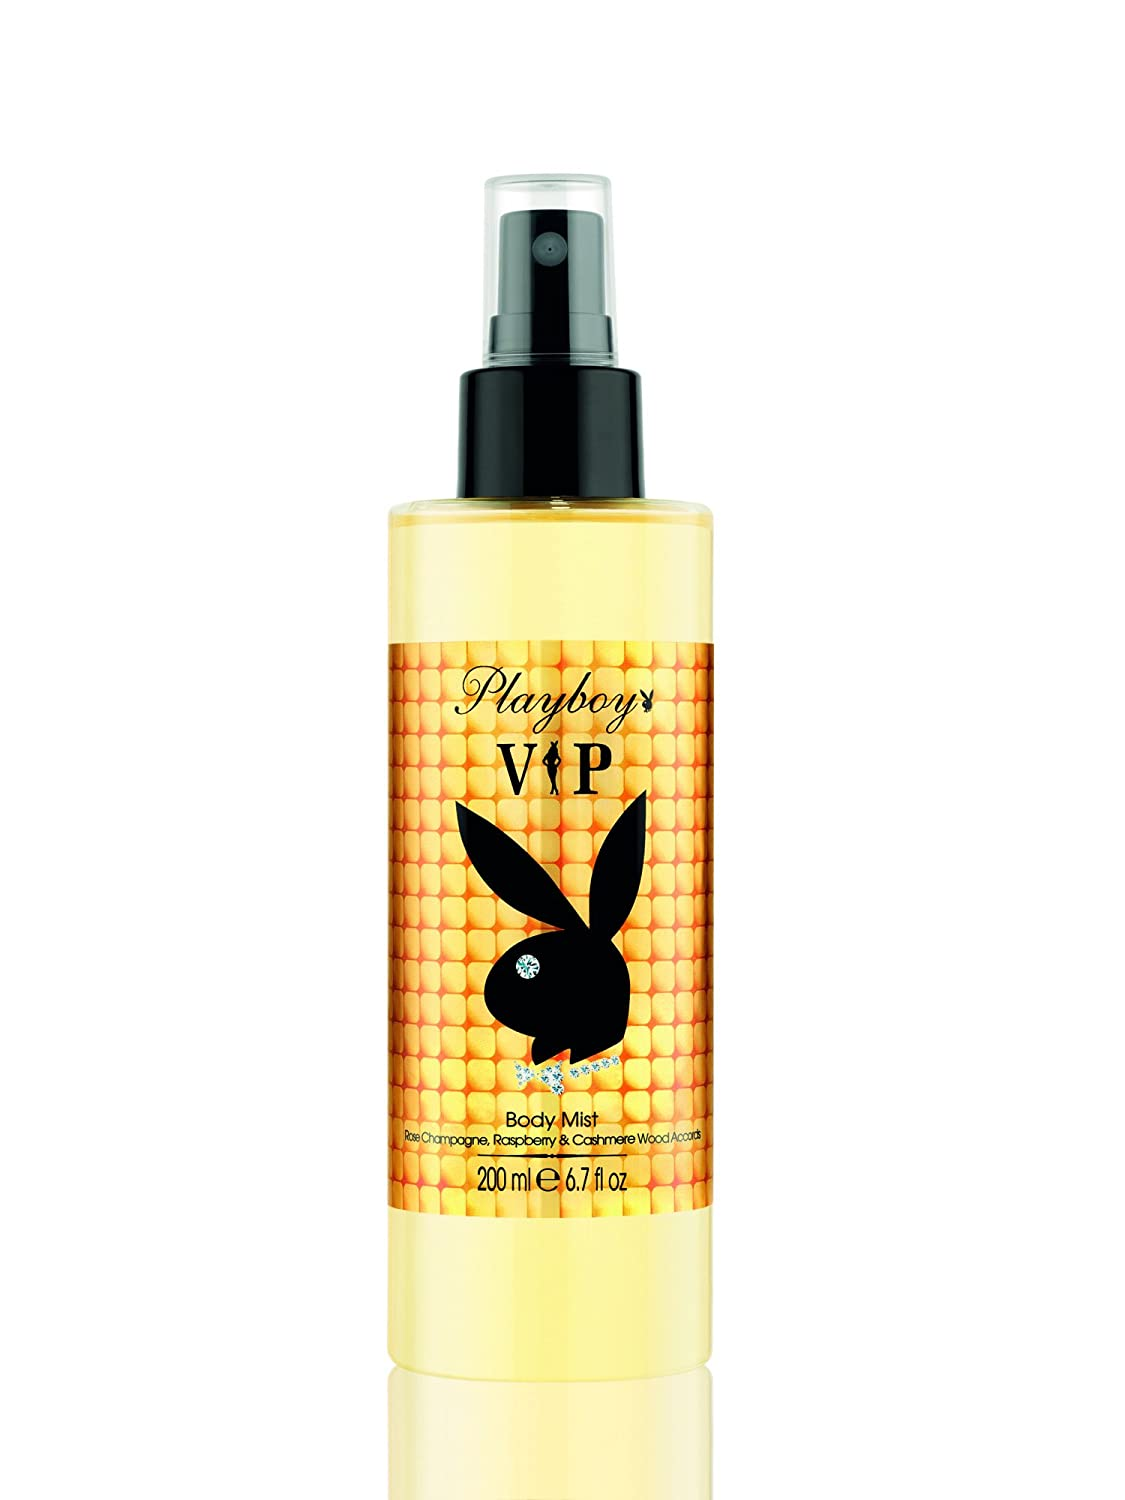 Playboy VIP Body Mist 200 ml / 6.7 fl oz